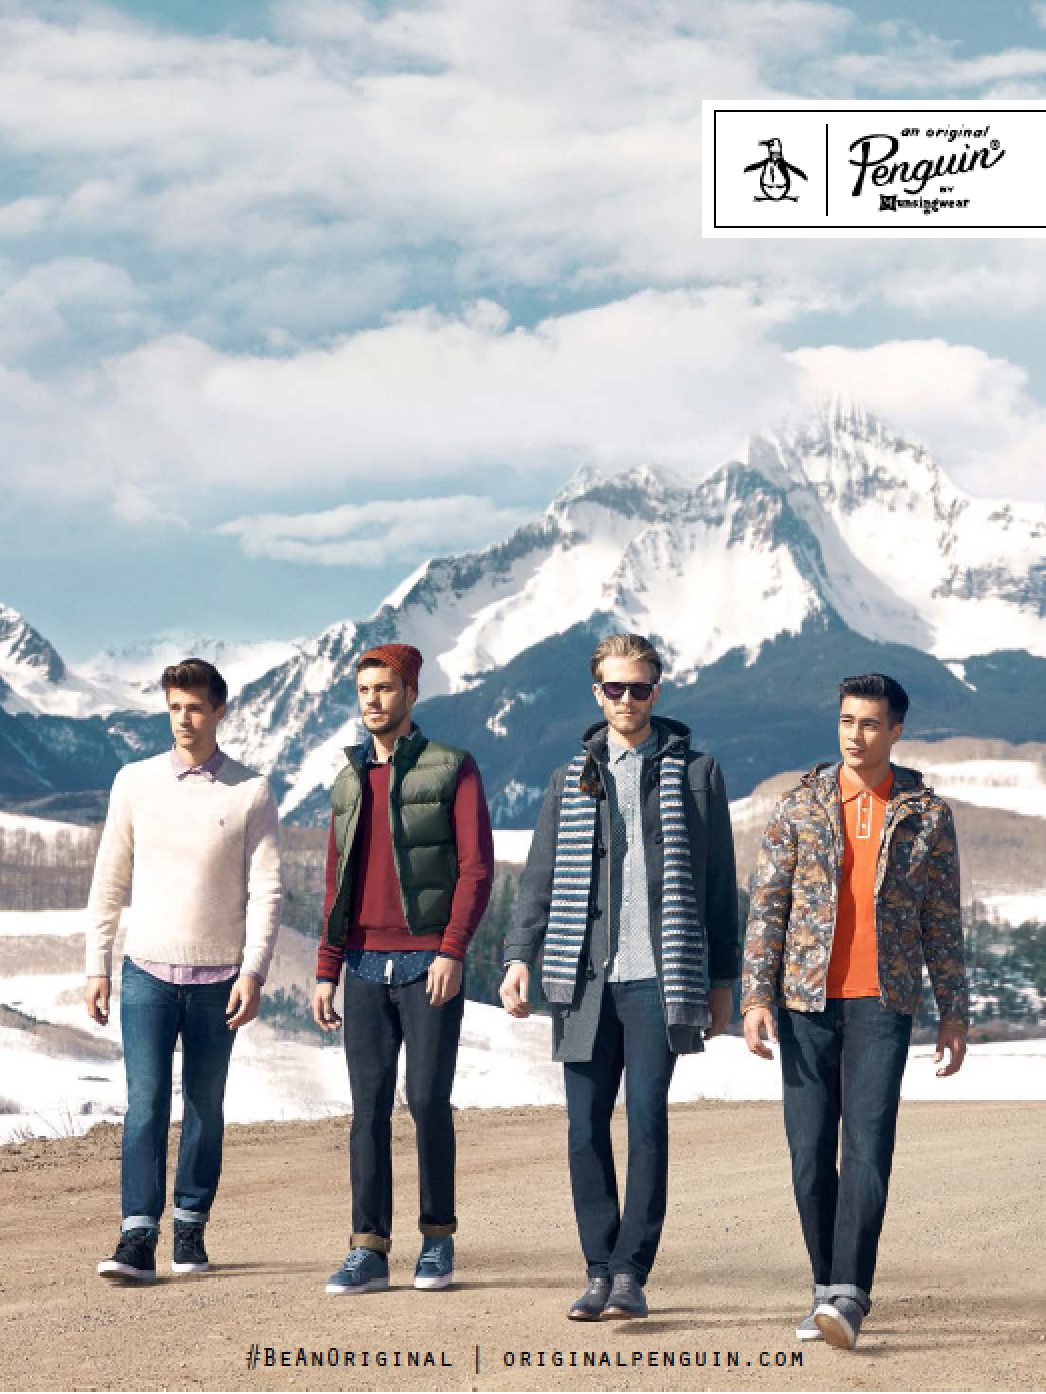 ORIGINAL PENGUIN FALL 2014